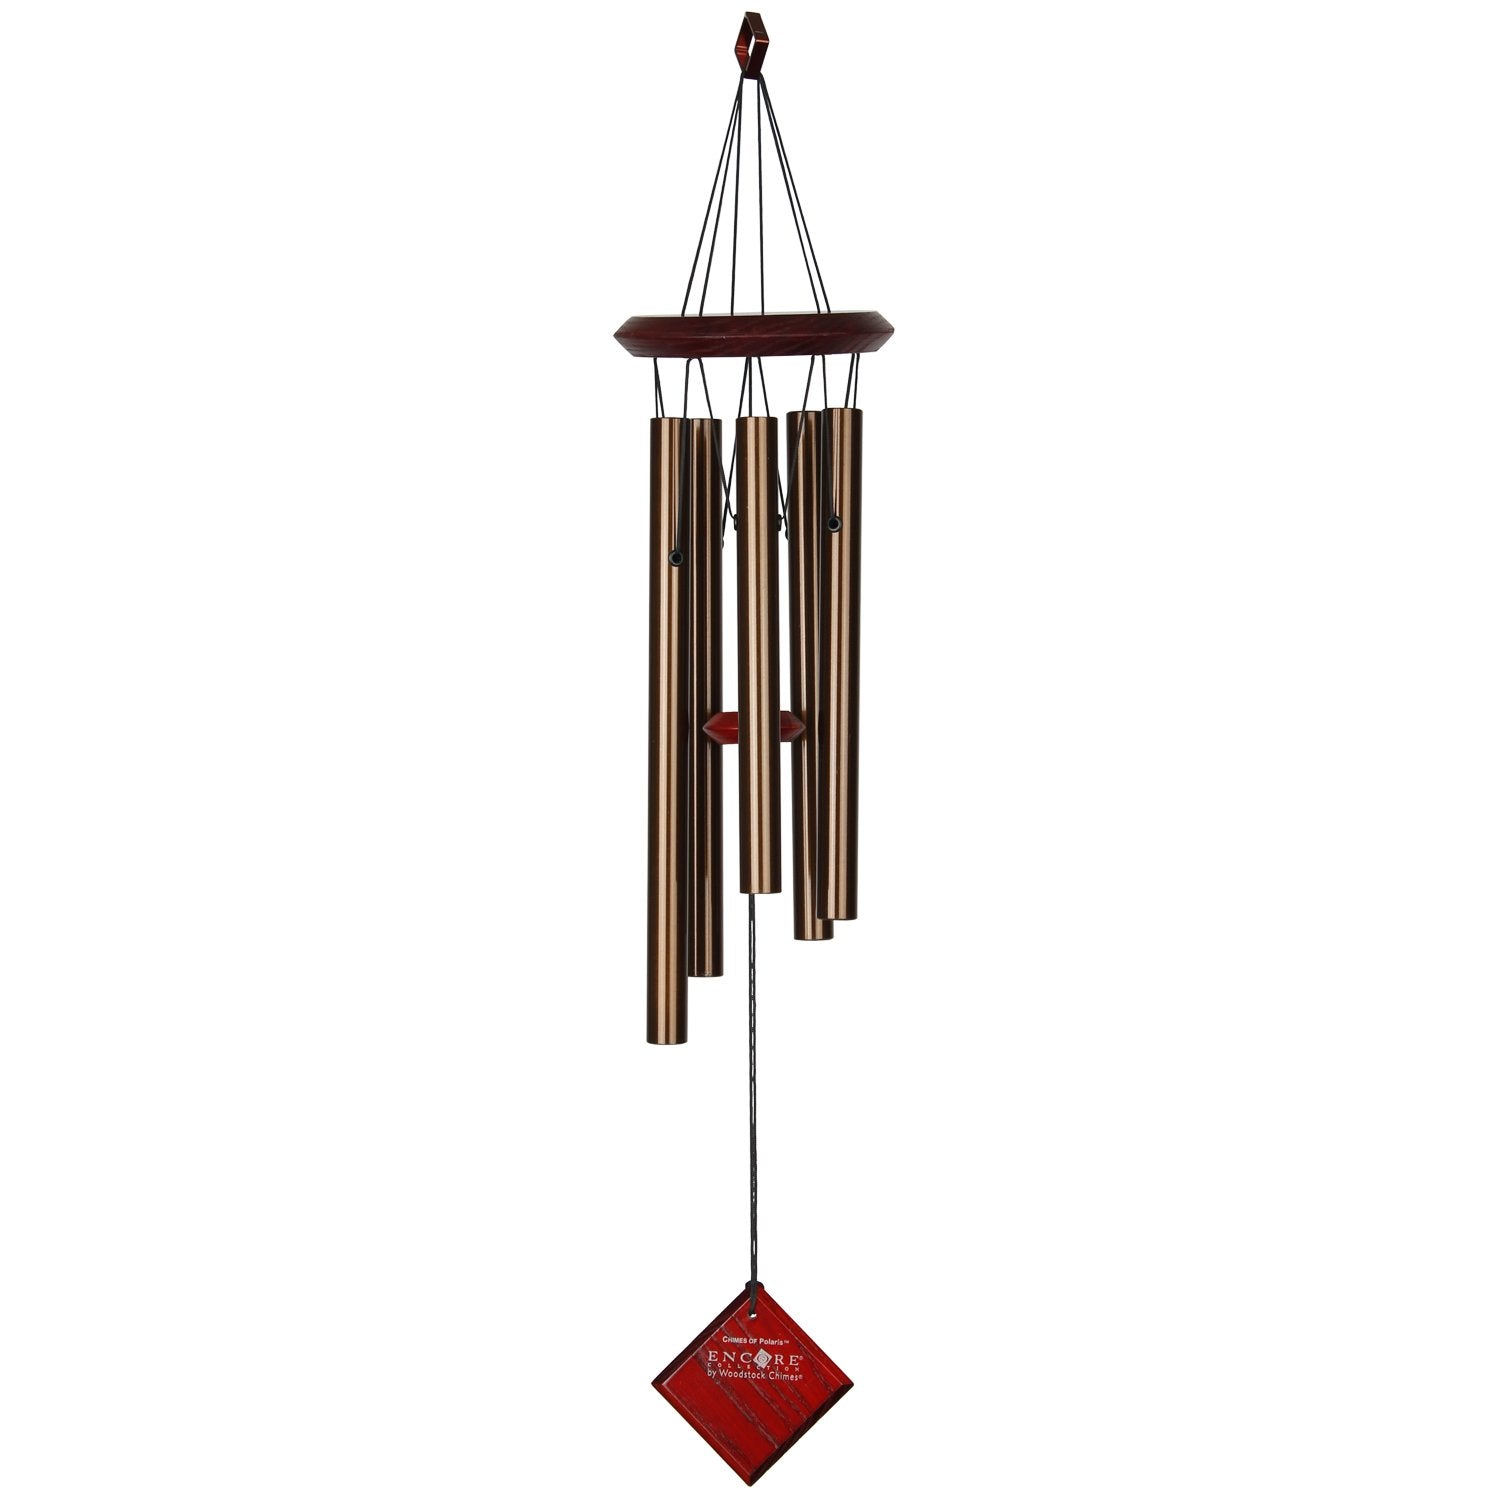 Encore Chimes of Polaris - Bronze full product image